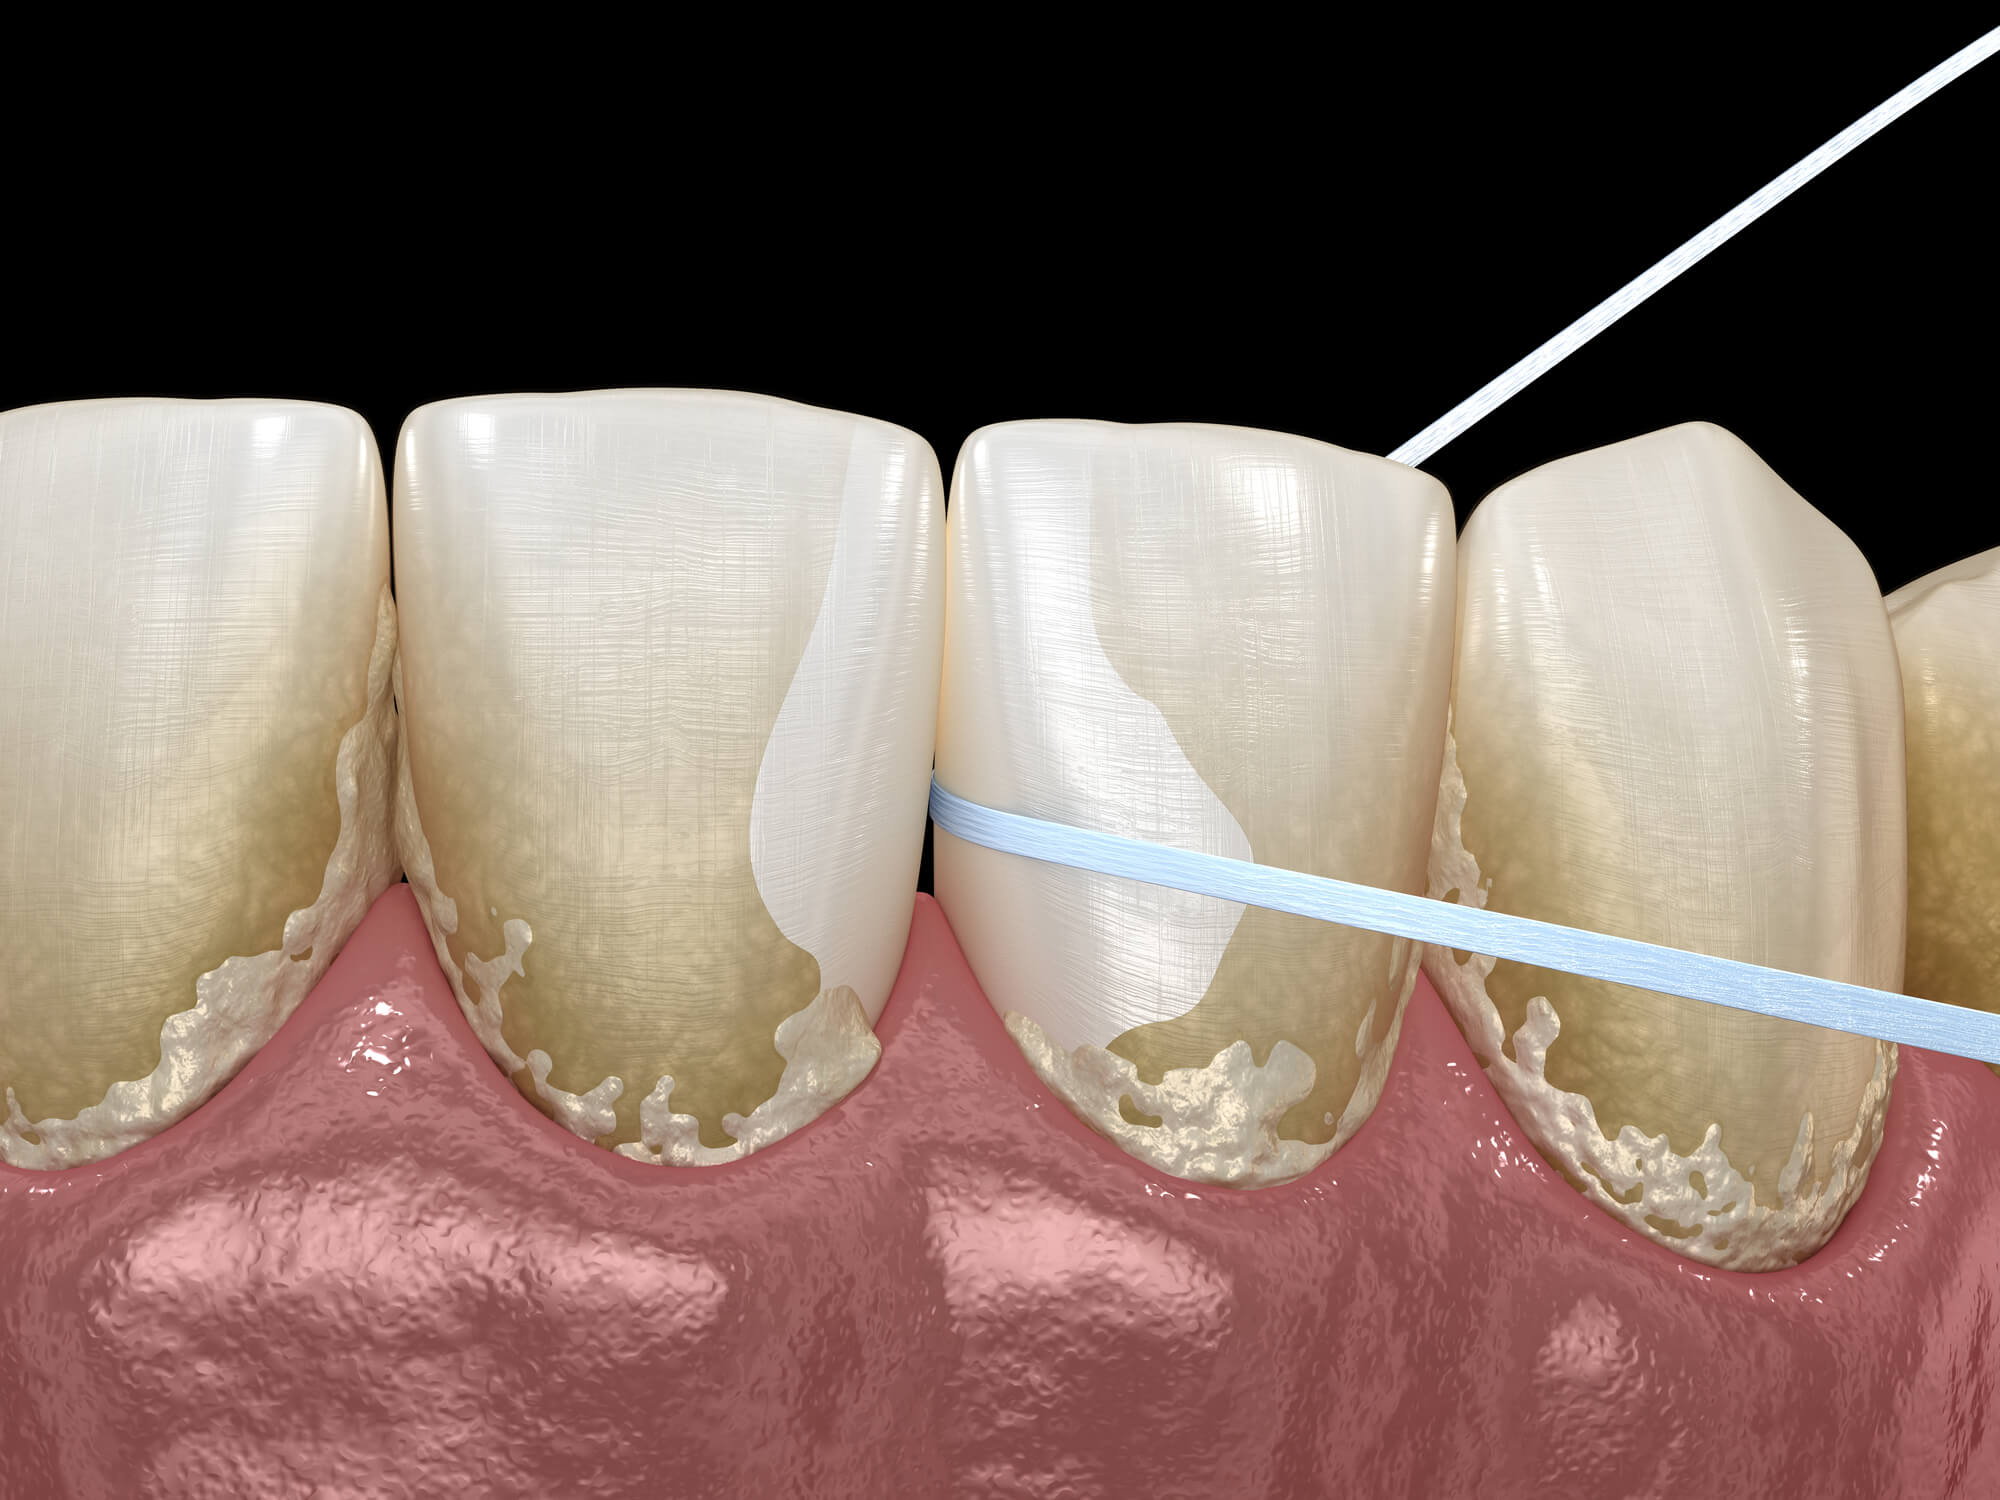 Who is the best Natural Periodontist Palm Beach Gardens?